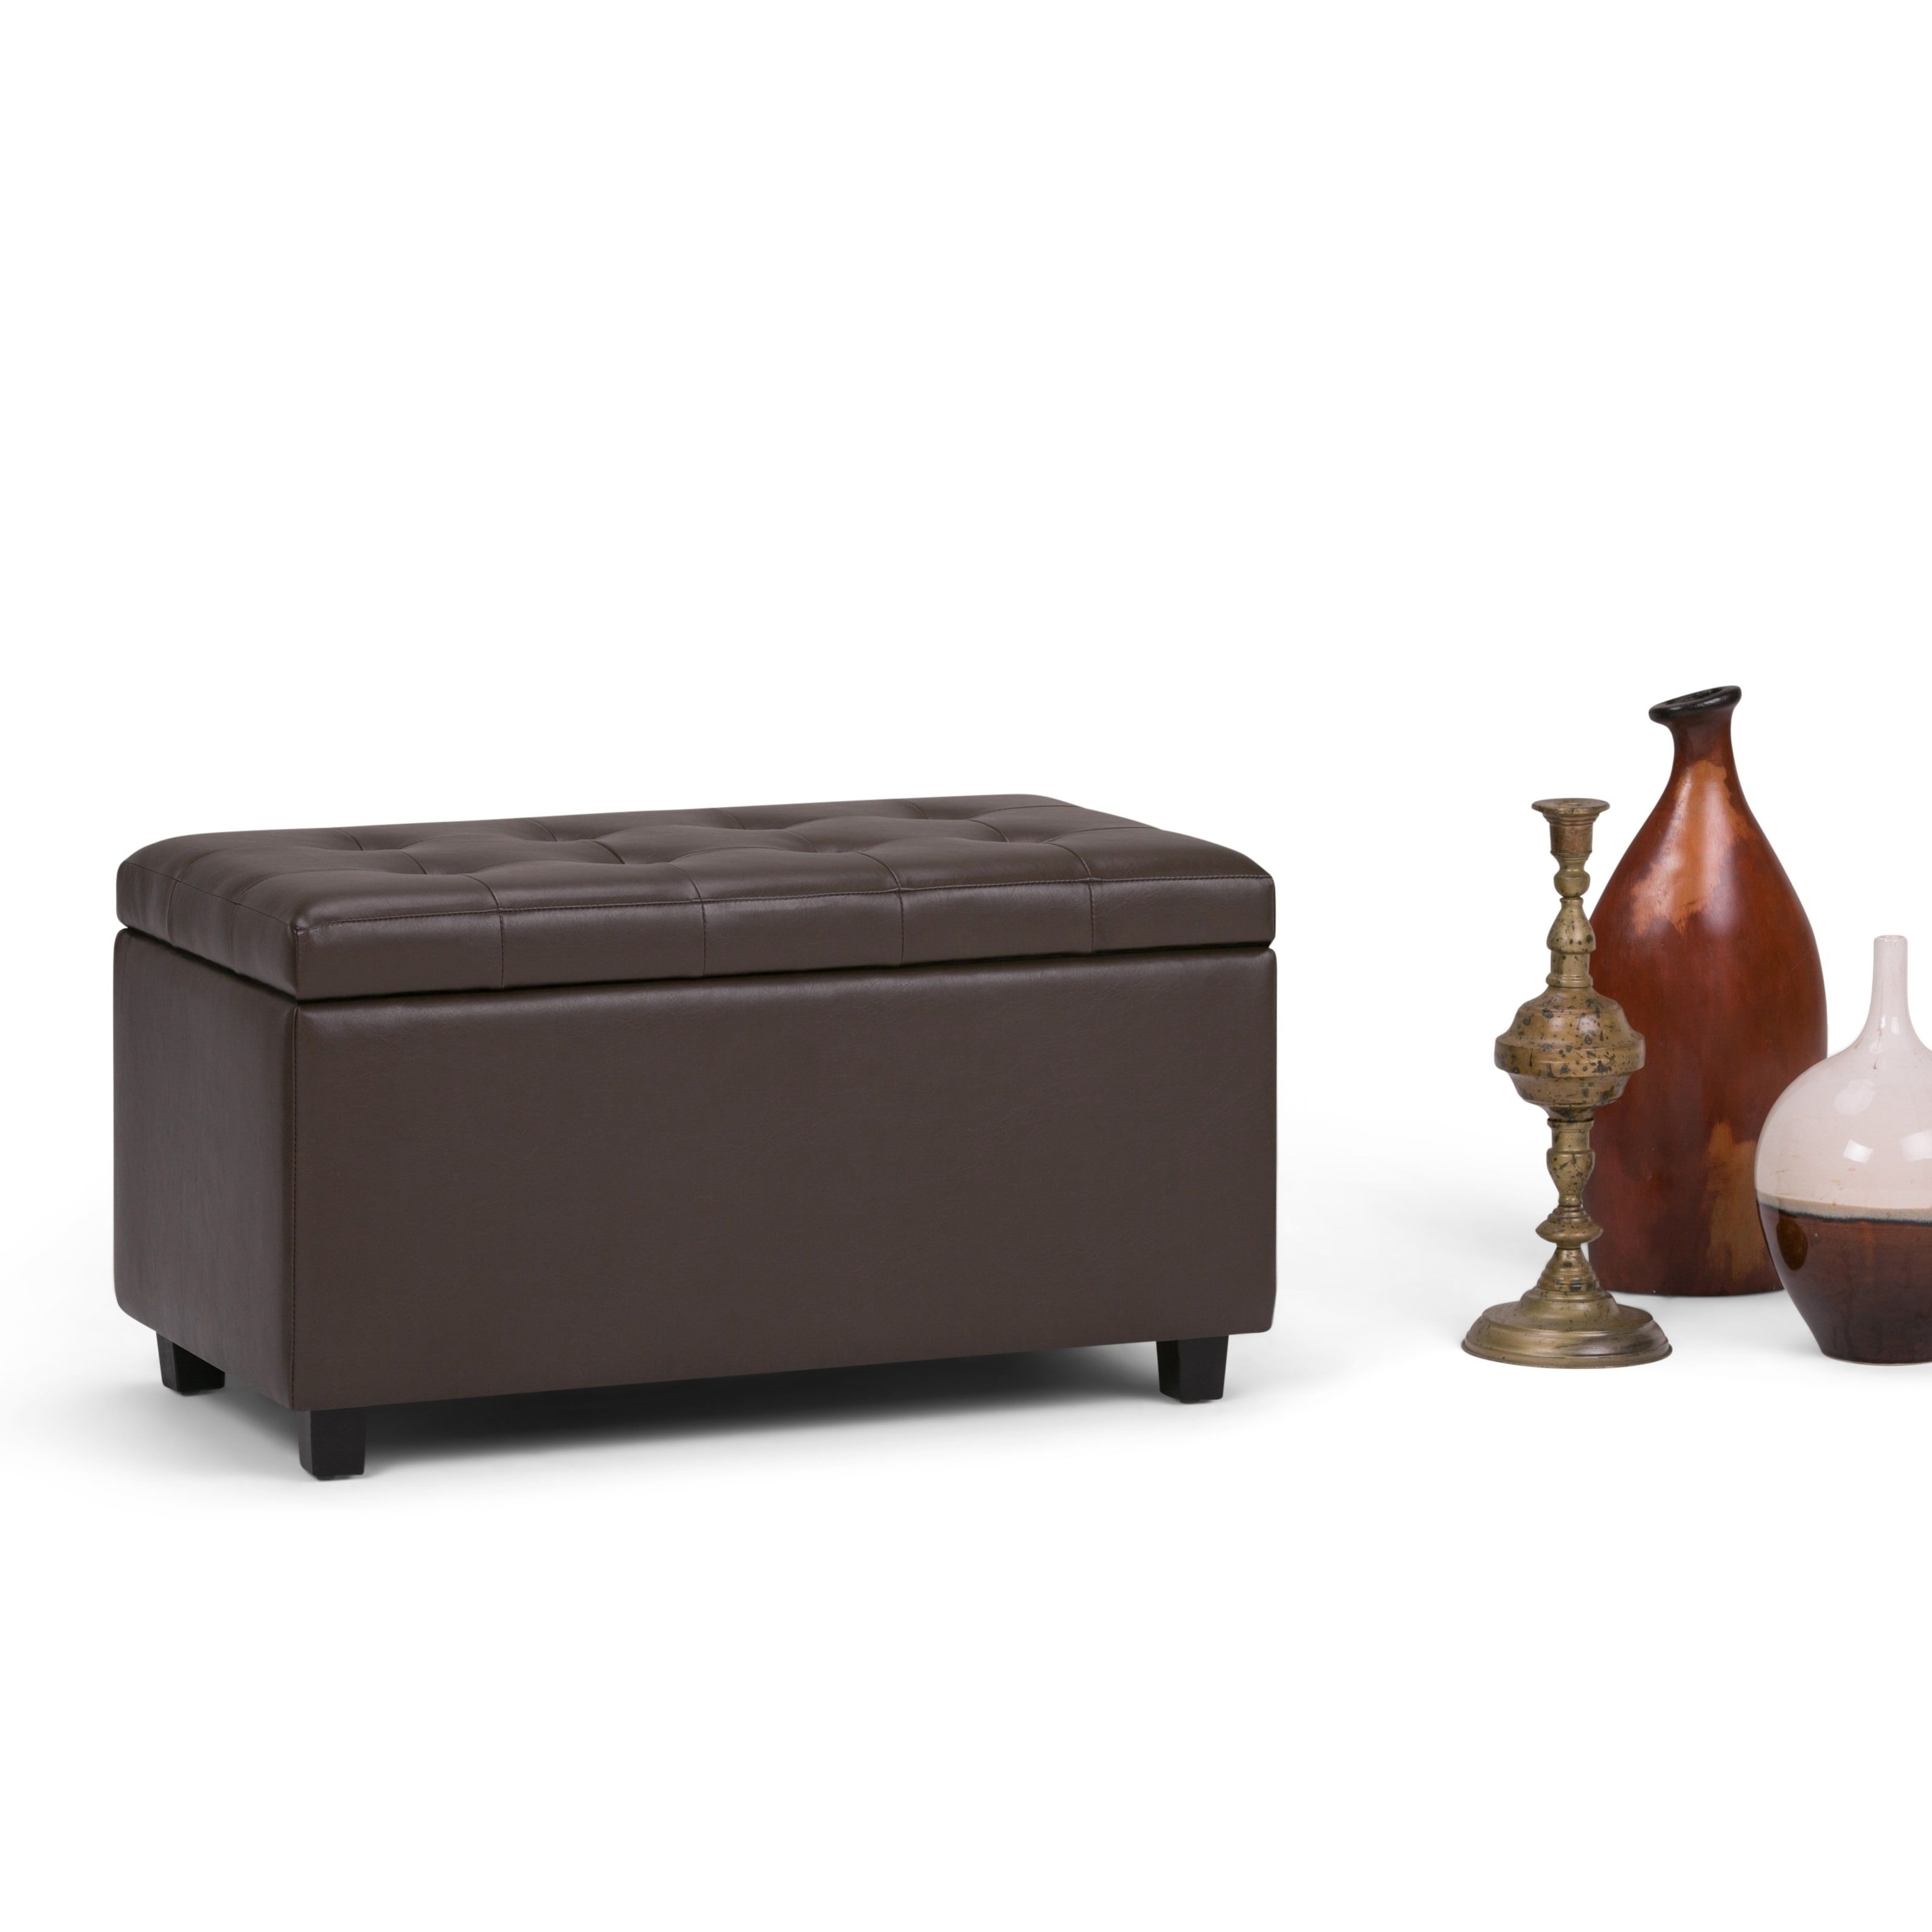 shipping fancy bench upholstered room the tufted today living of superior shoe storage ottoman luxury display free inch